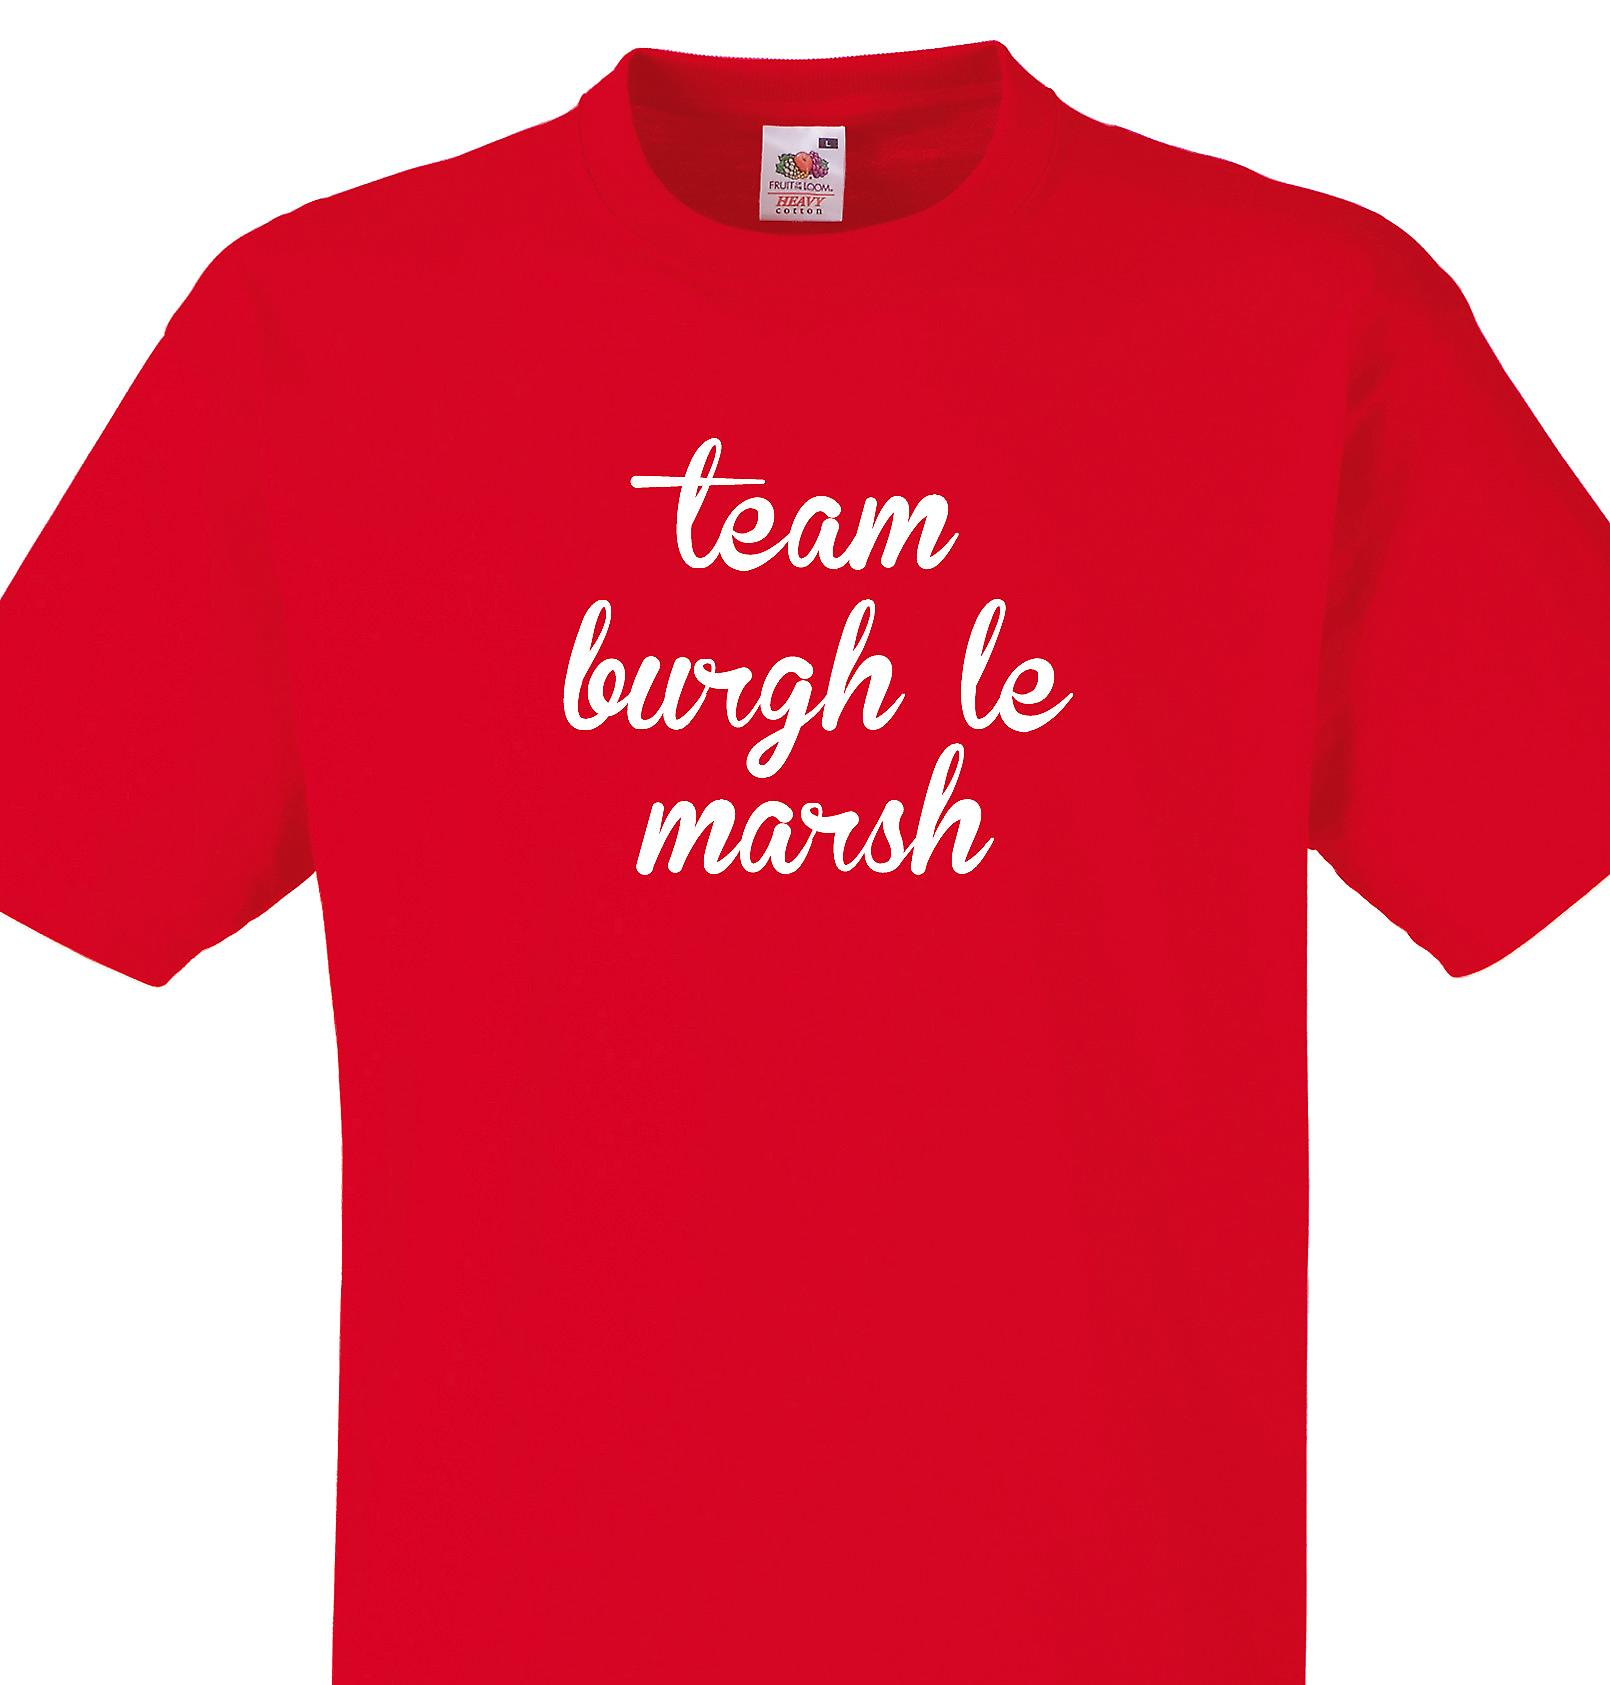 Team Burgh le marsh Red T shirt